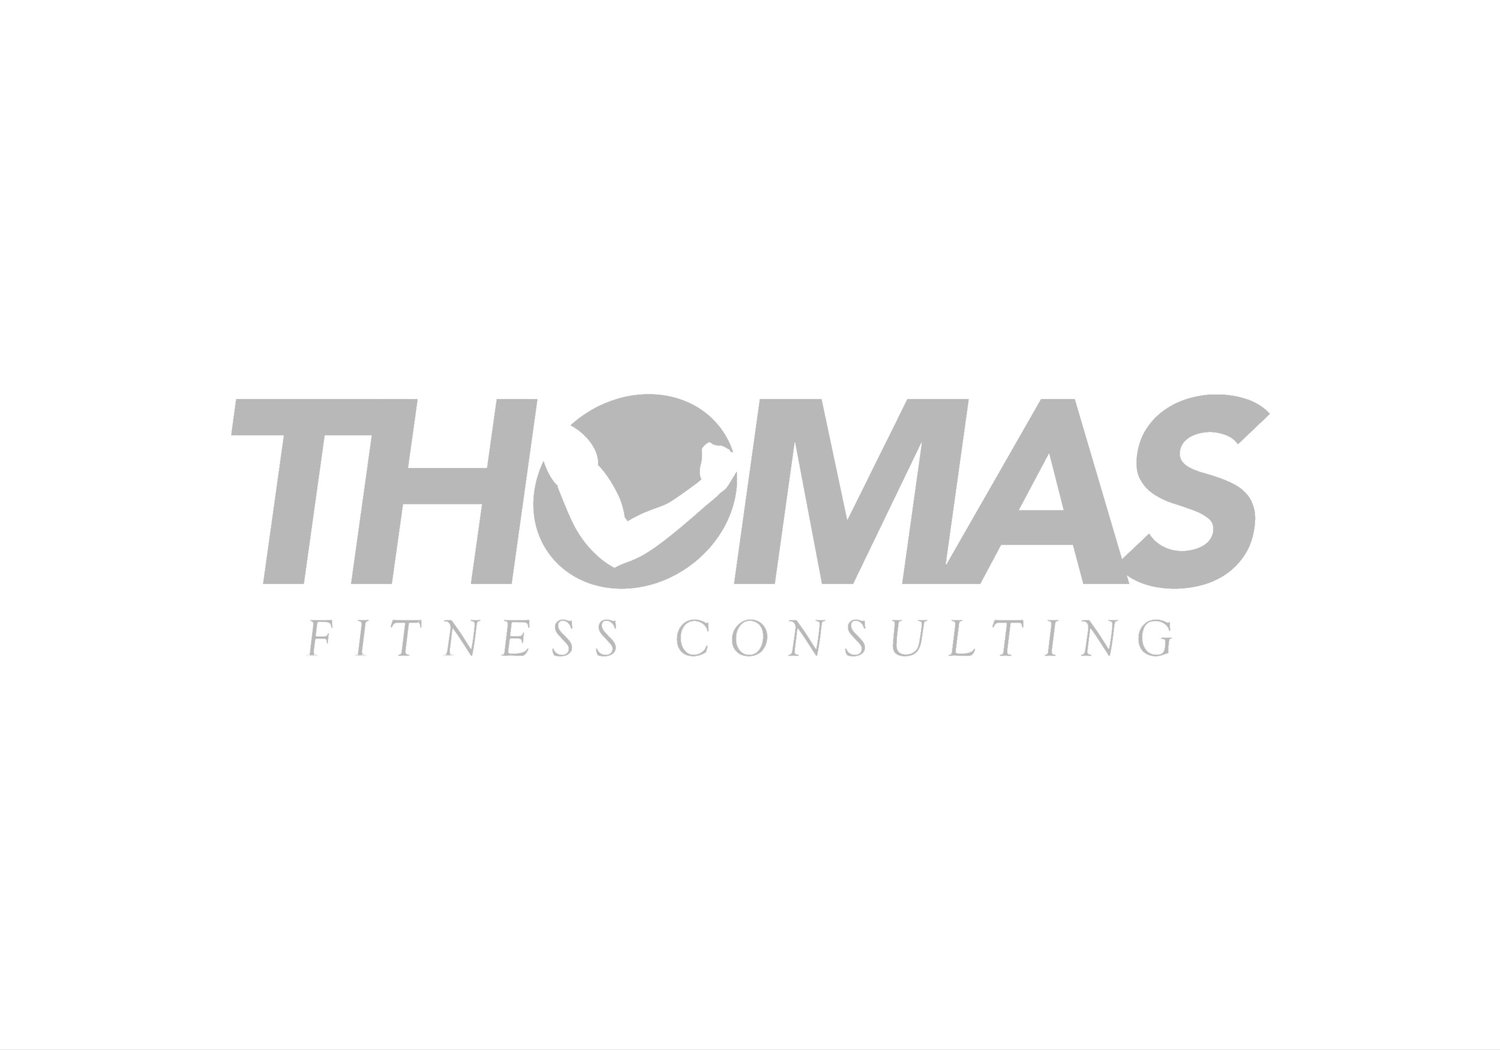 Thomas Fitness Consulting